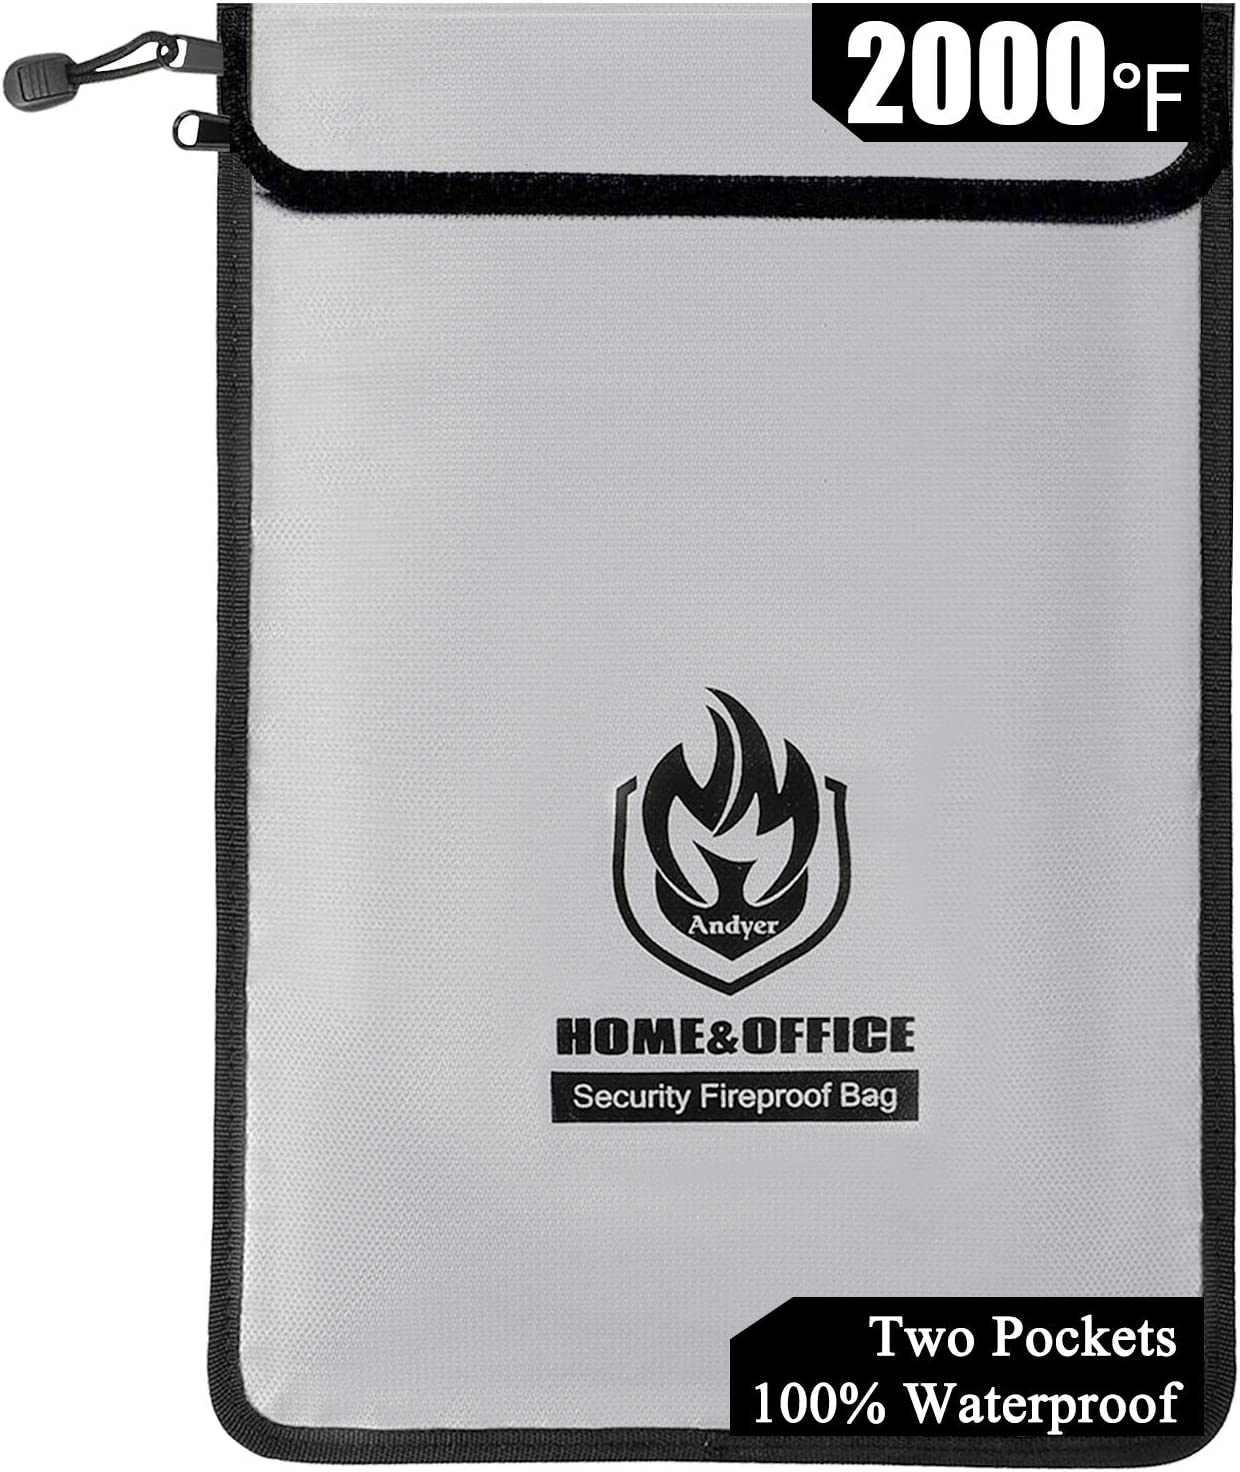 """Upgraded Two Pockets Fireproof Document Bags (2000℉), Andyer 15""""x 11""""Waterproof and Fireproof Money Bag with Zipper, Fire Safe Storage for Valuables,Money,Jewelry,Legal Documents,File and Tablet"""